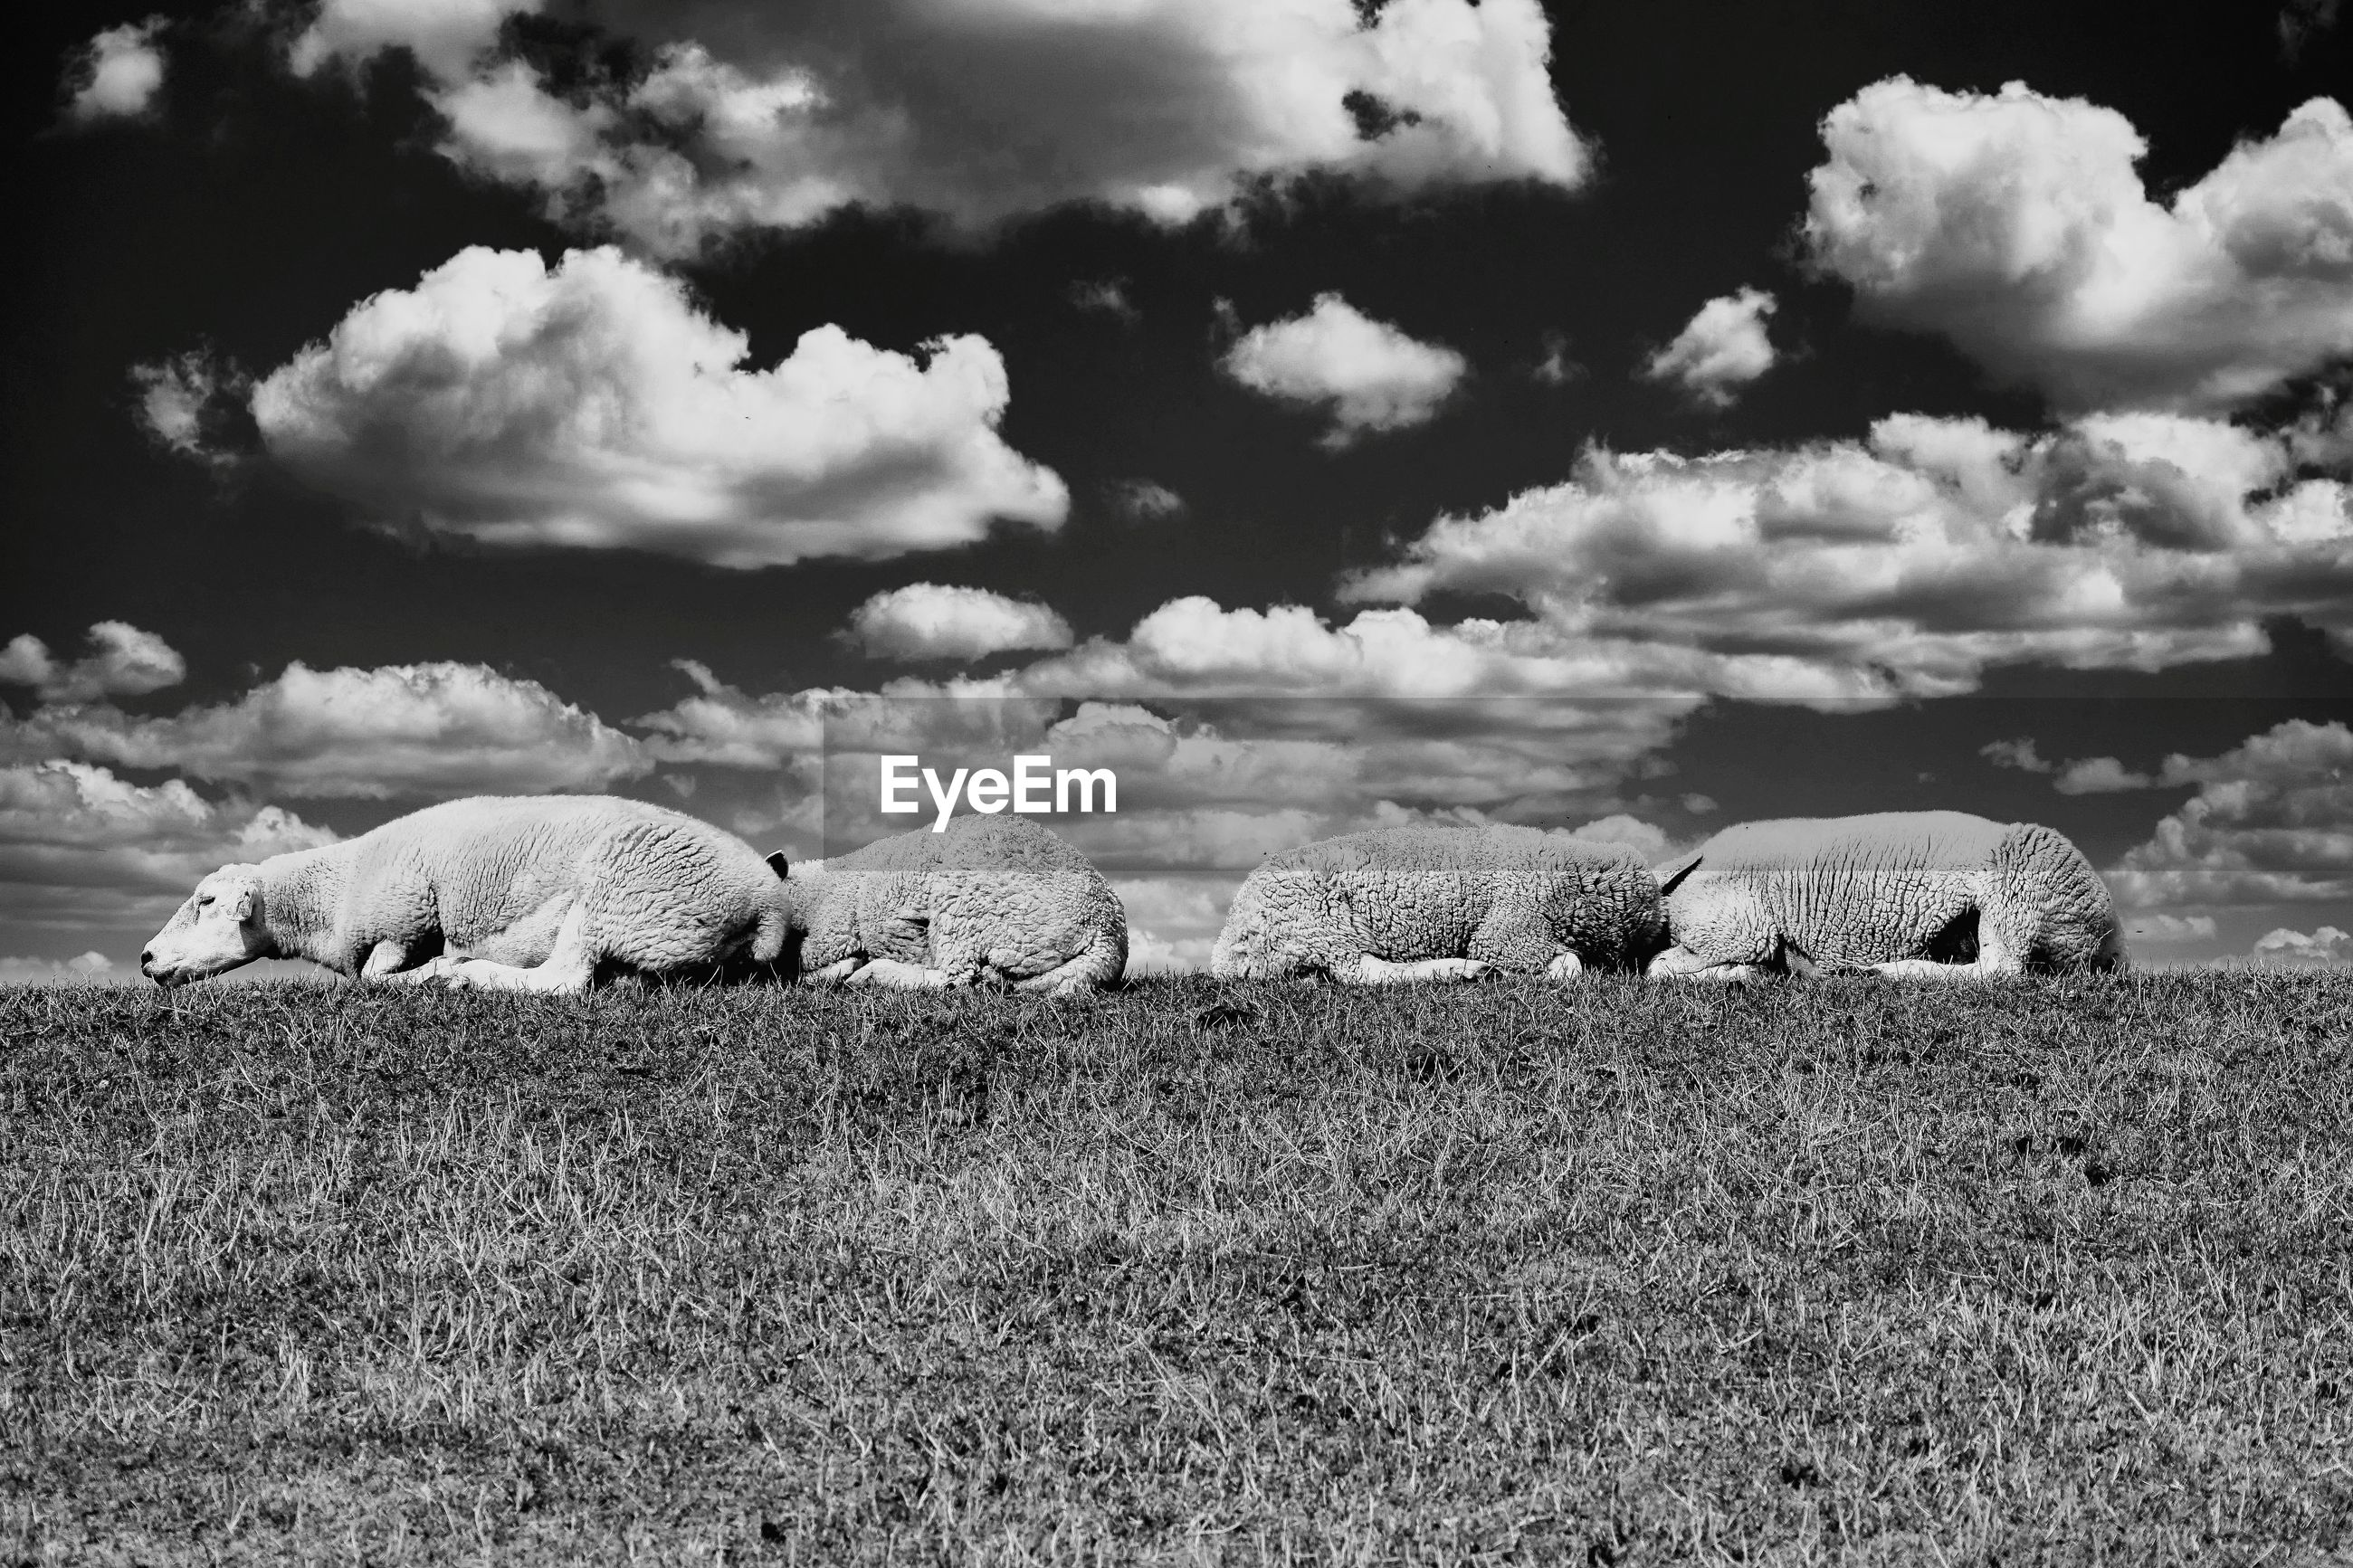 VIEW OF SHEEP ON FIELD BY LAND